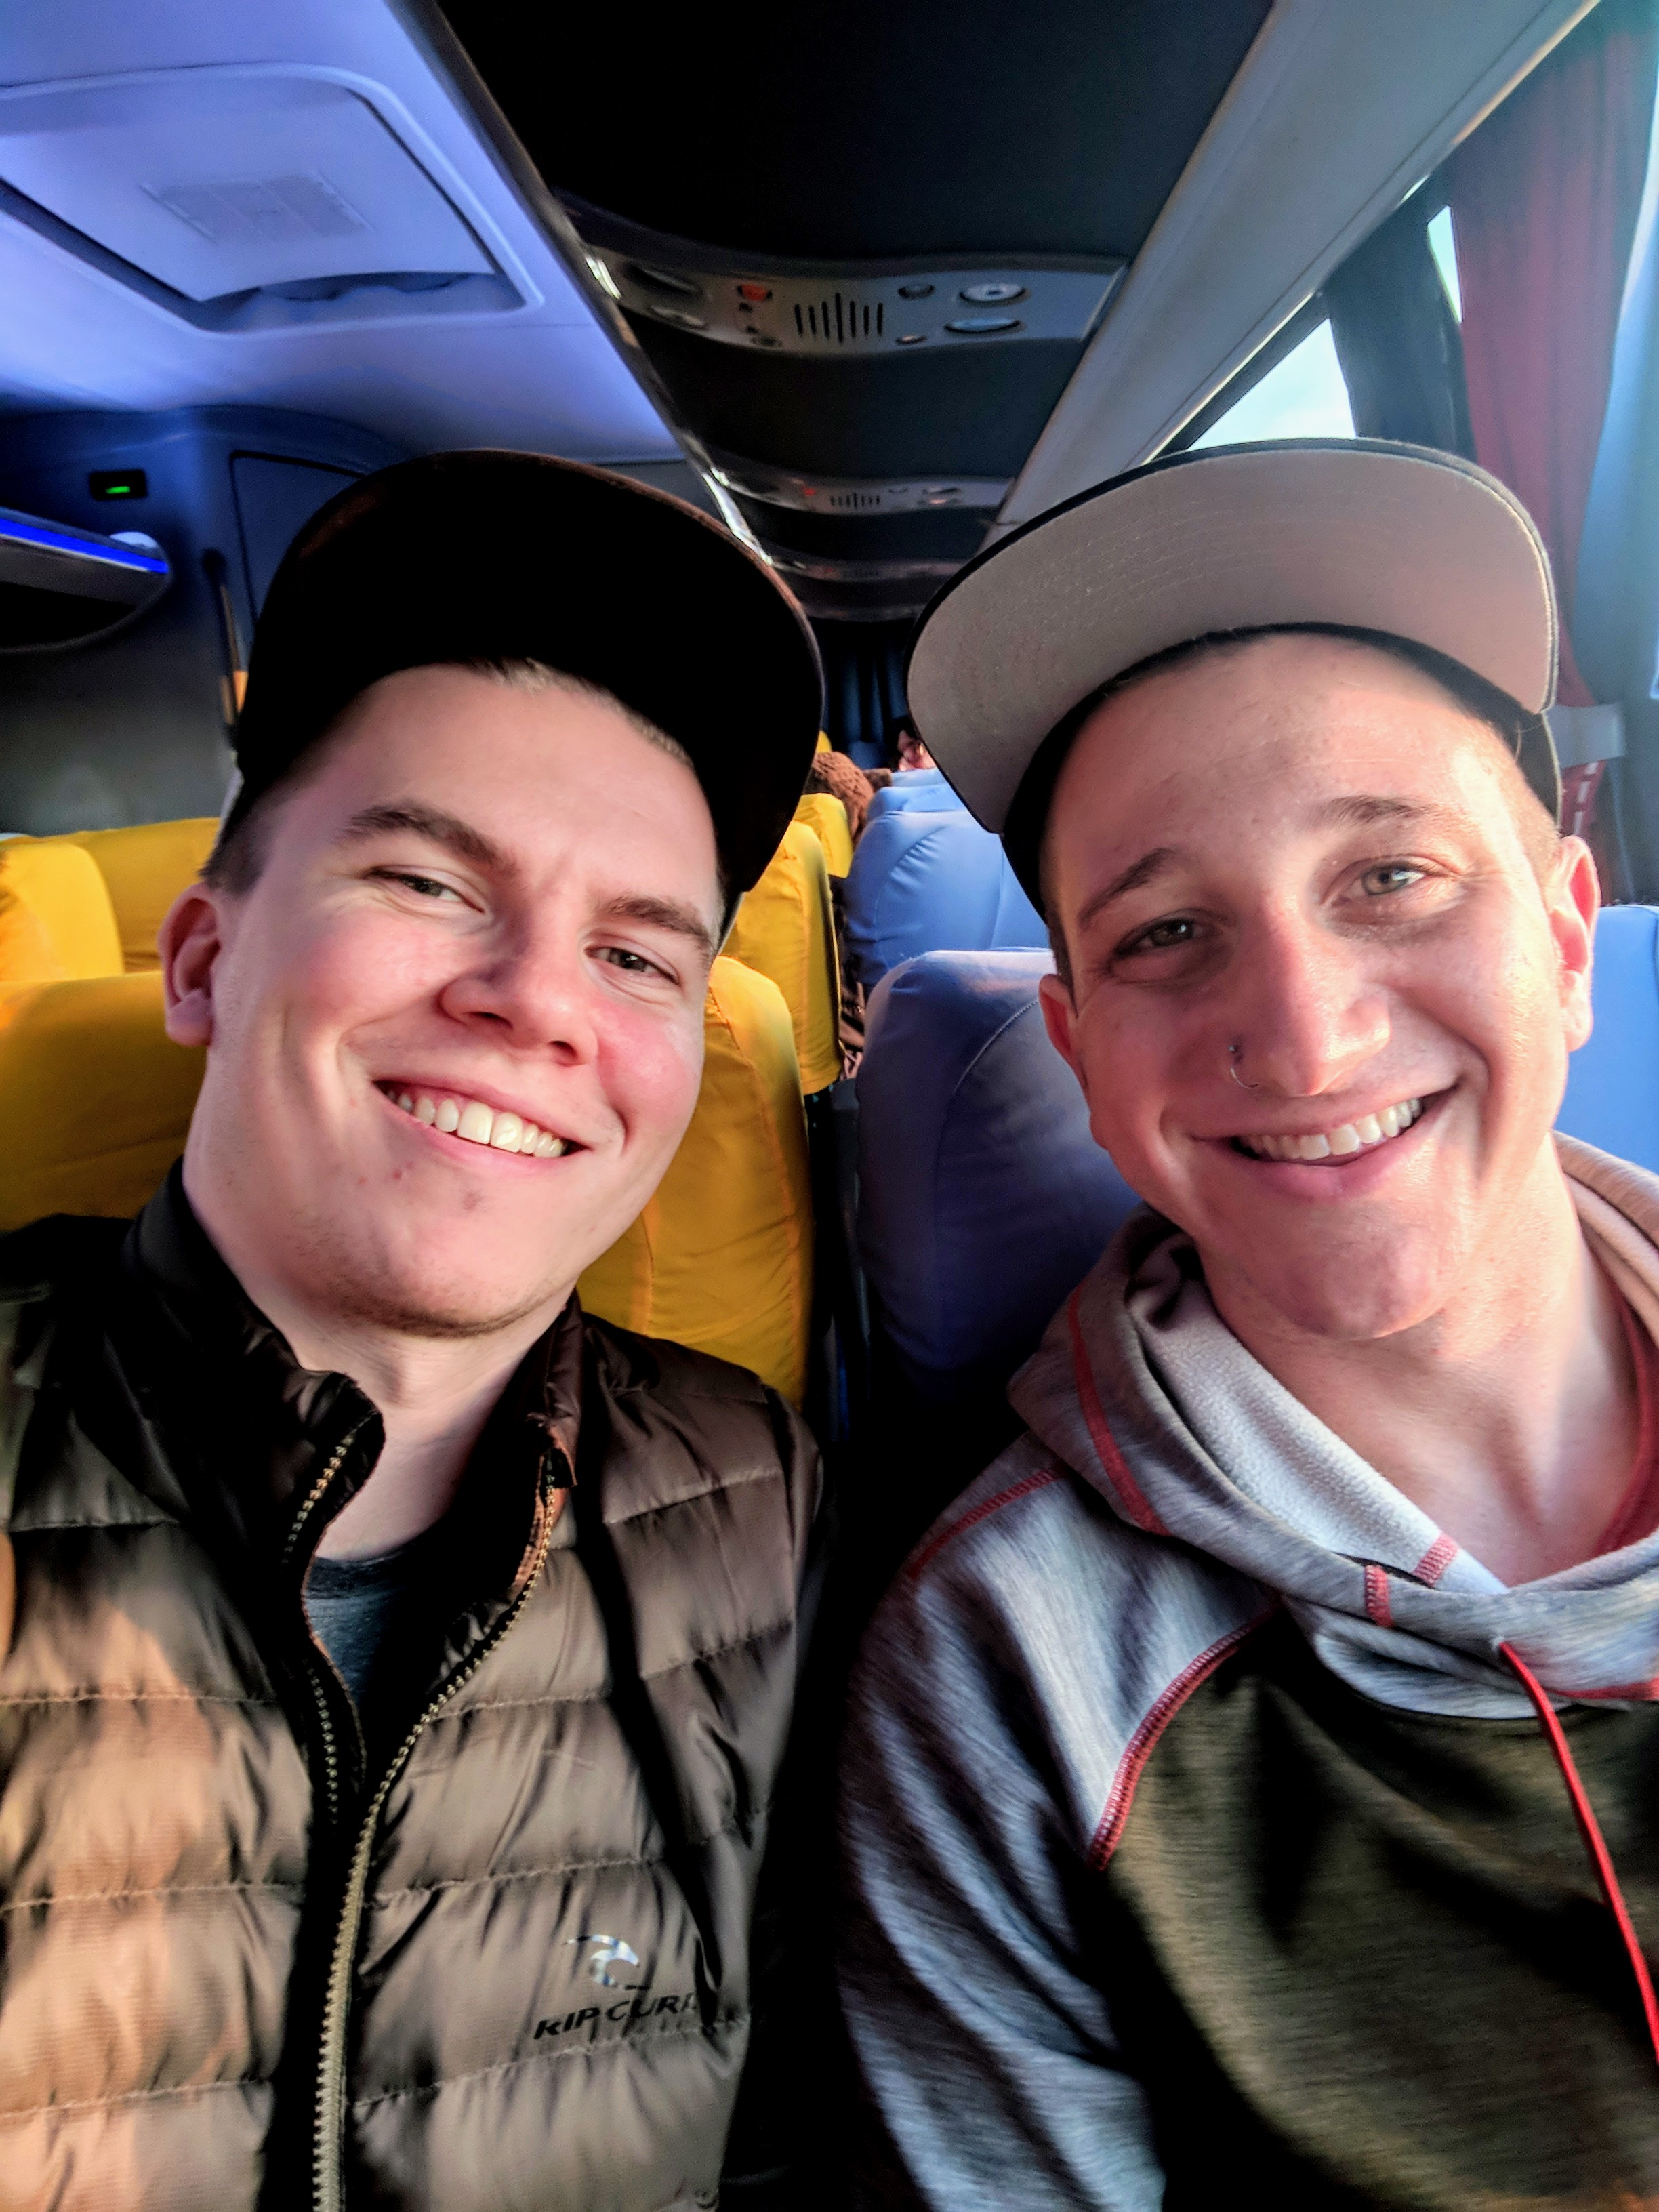 Excuse the puffy eyes and the sleepy faces, it was a REALLY early bus to cross the border. We had grand plans of being signed into work on time today.